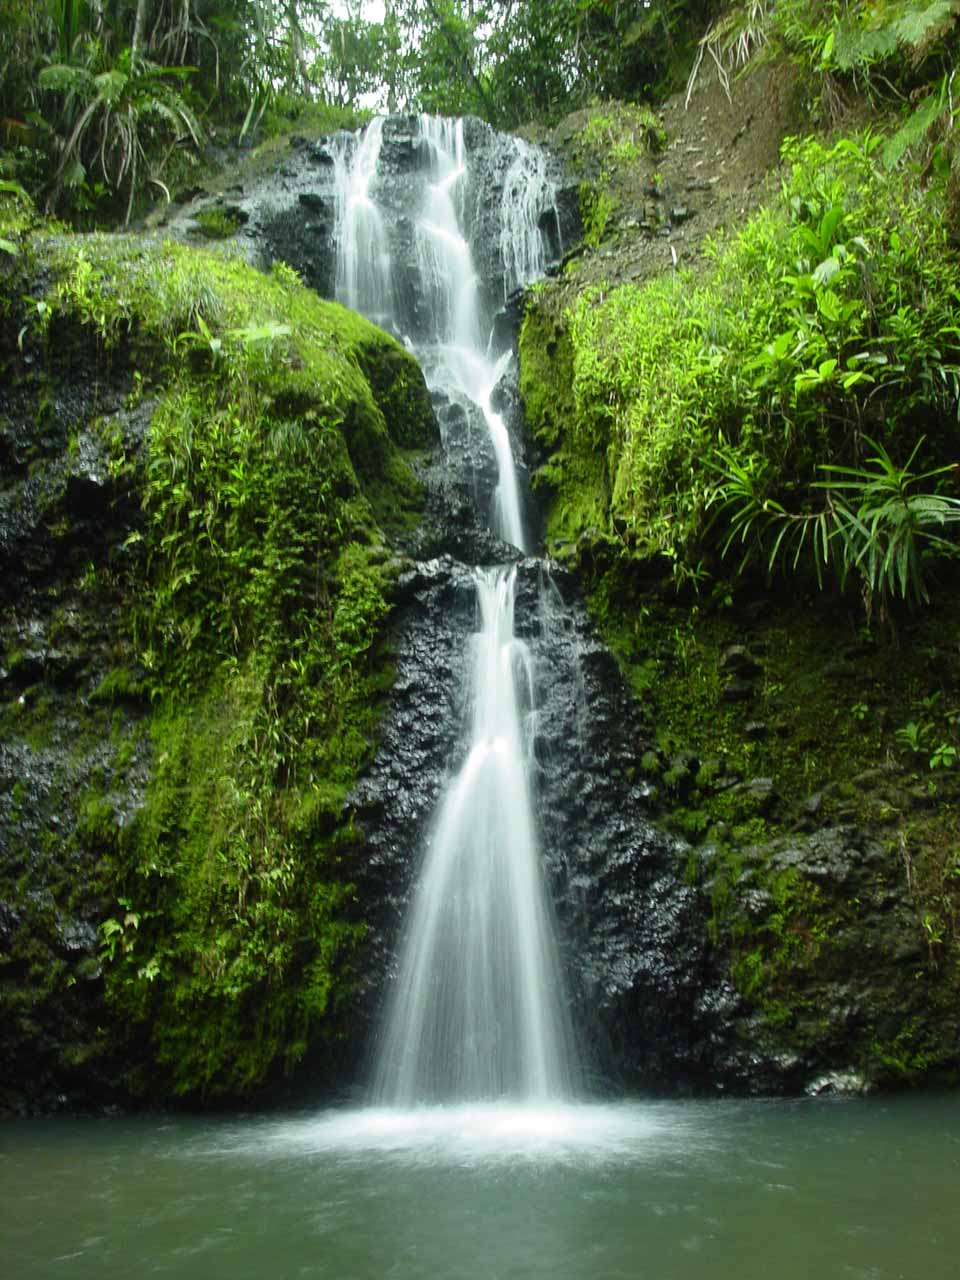 Waisila Falls in Colo-i-Suva near the capital city of Suva